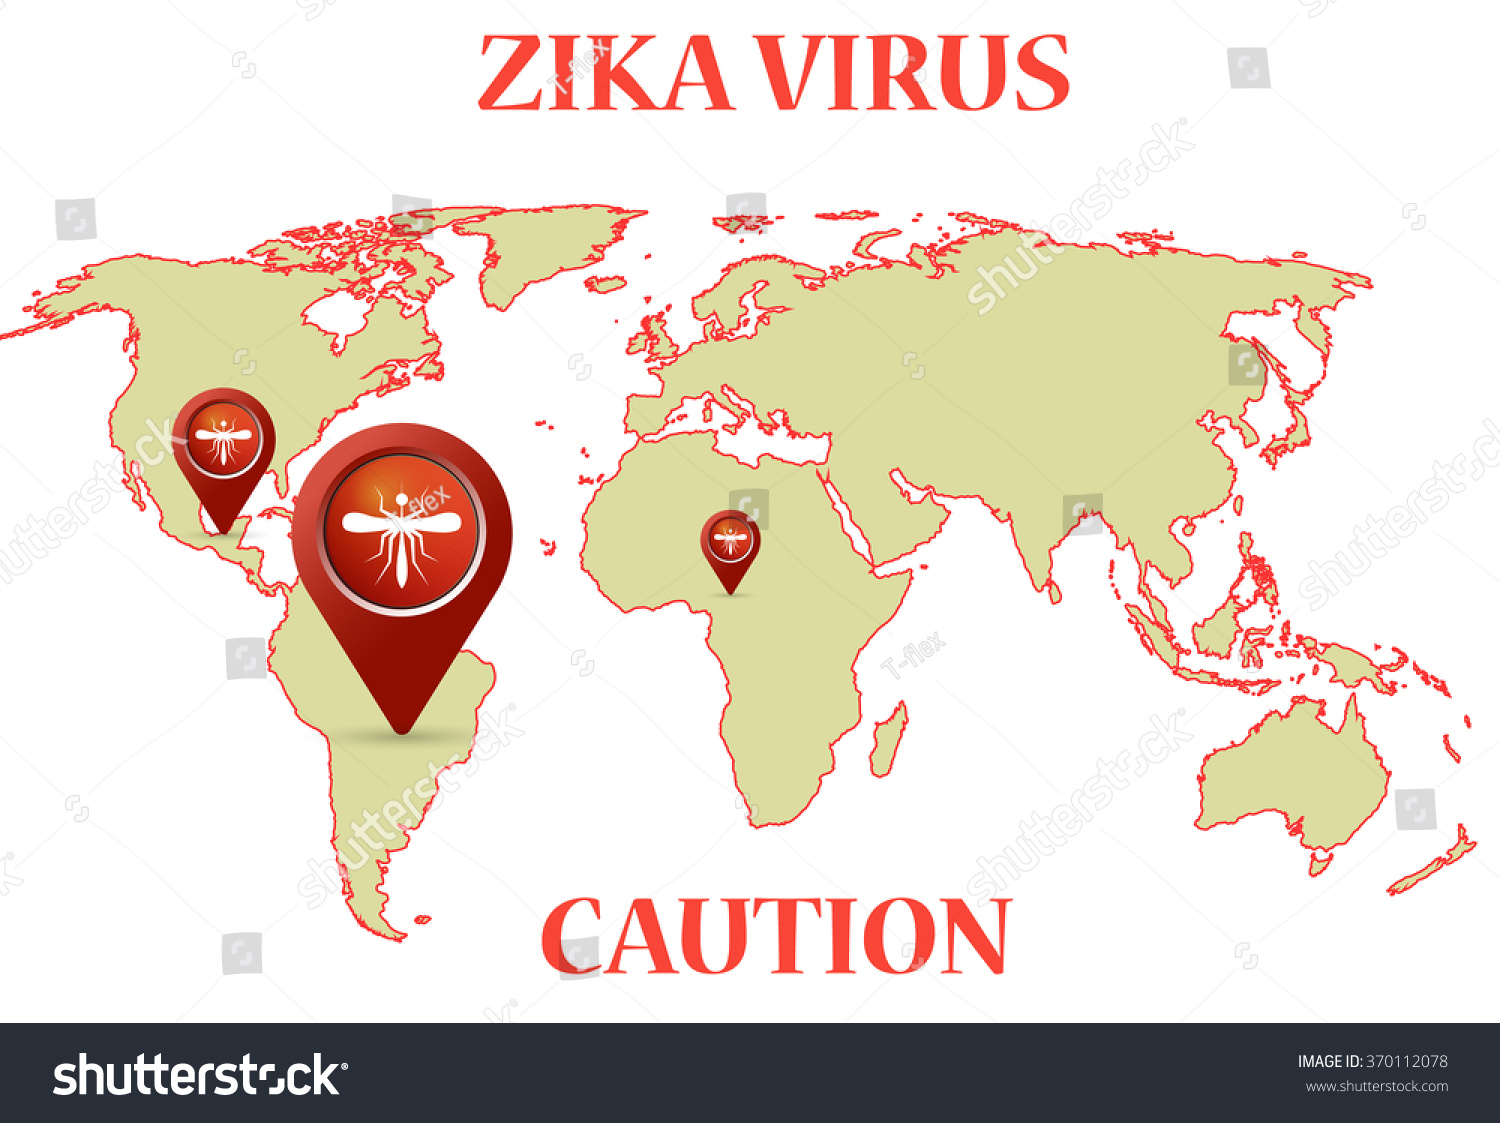 South East Shipping News Travel Department Of Public Health Acute - Zika virus map usa states